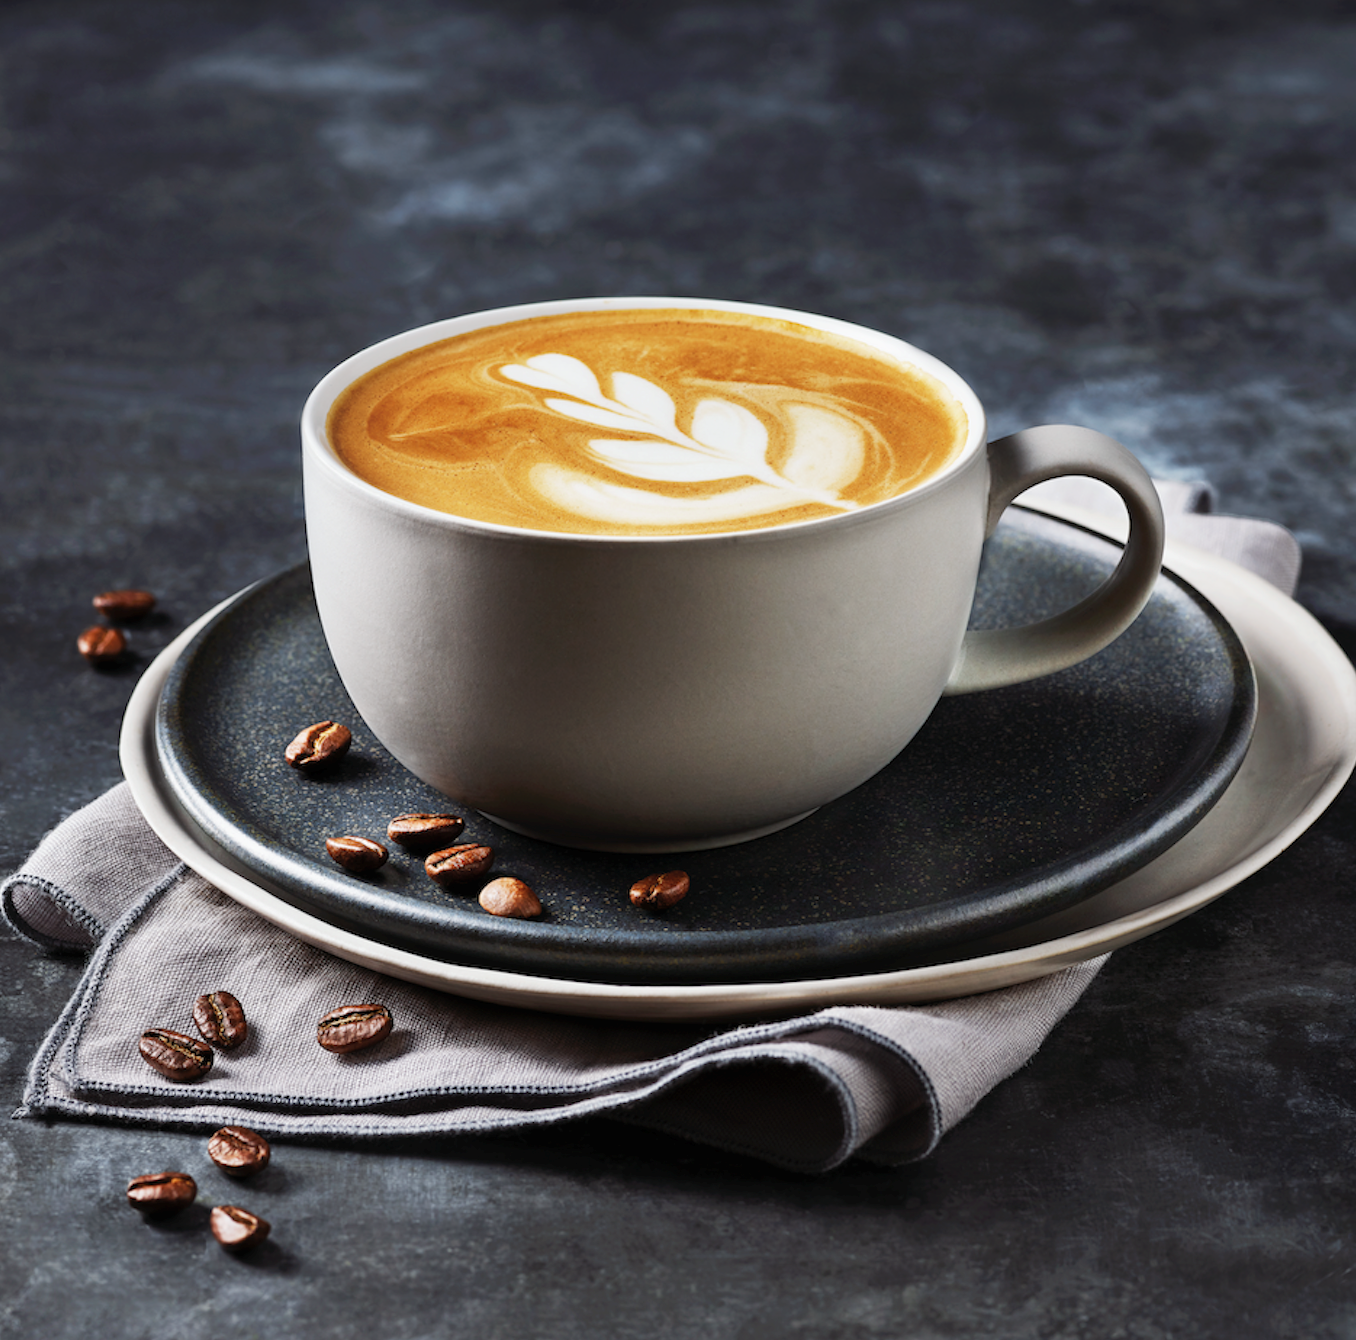 M and S cafe - Food and Drink News